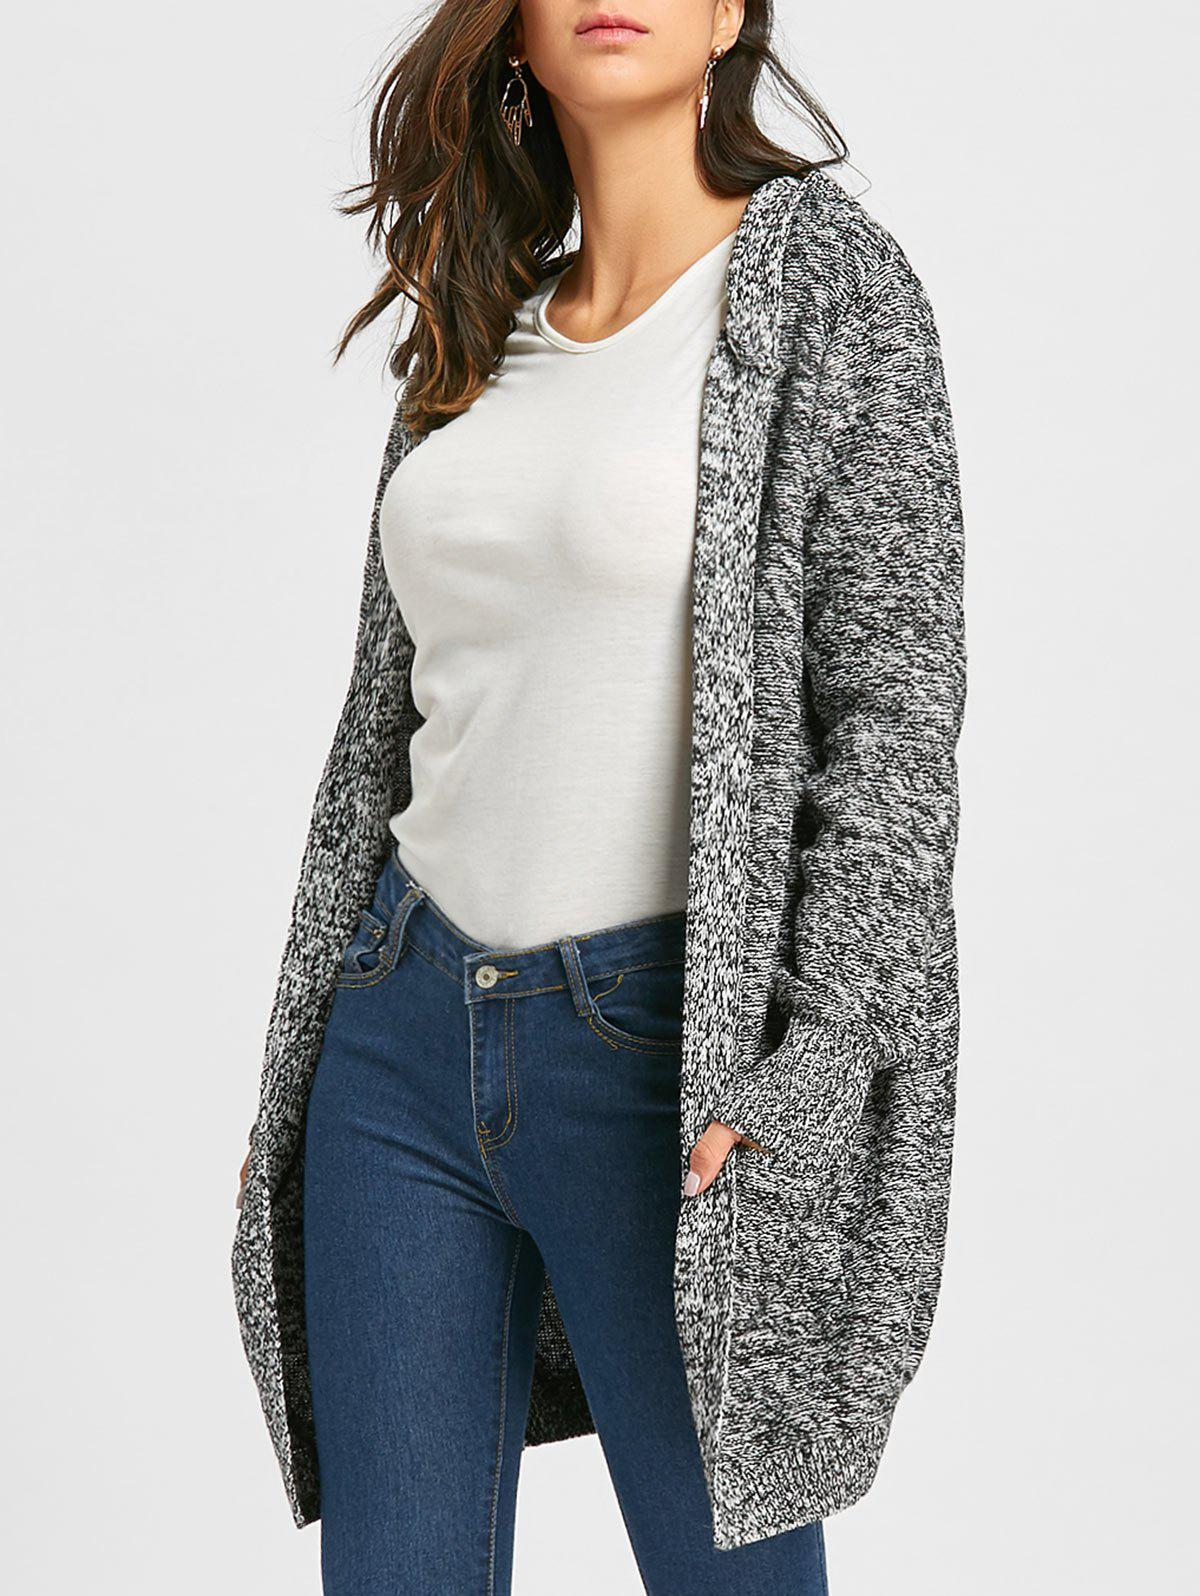 Heathered Front Pocket Knit Hooded CardiganWOMEN<br><br>Size: L; Color: BLACK; Type: Cardigans; Material: Polyester; Sleeve Length: Full; Collar: Hooded; Style: Fashion; Pattern Type: Others; Embellishment: Pockets; Season: Fall,Spring; Weight: 0.8500kg; Package Contents: 1 x Cardigan;